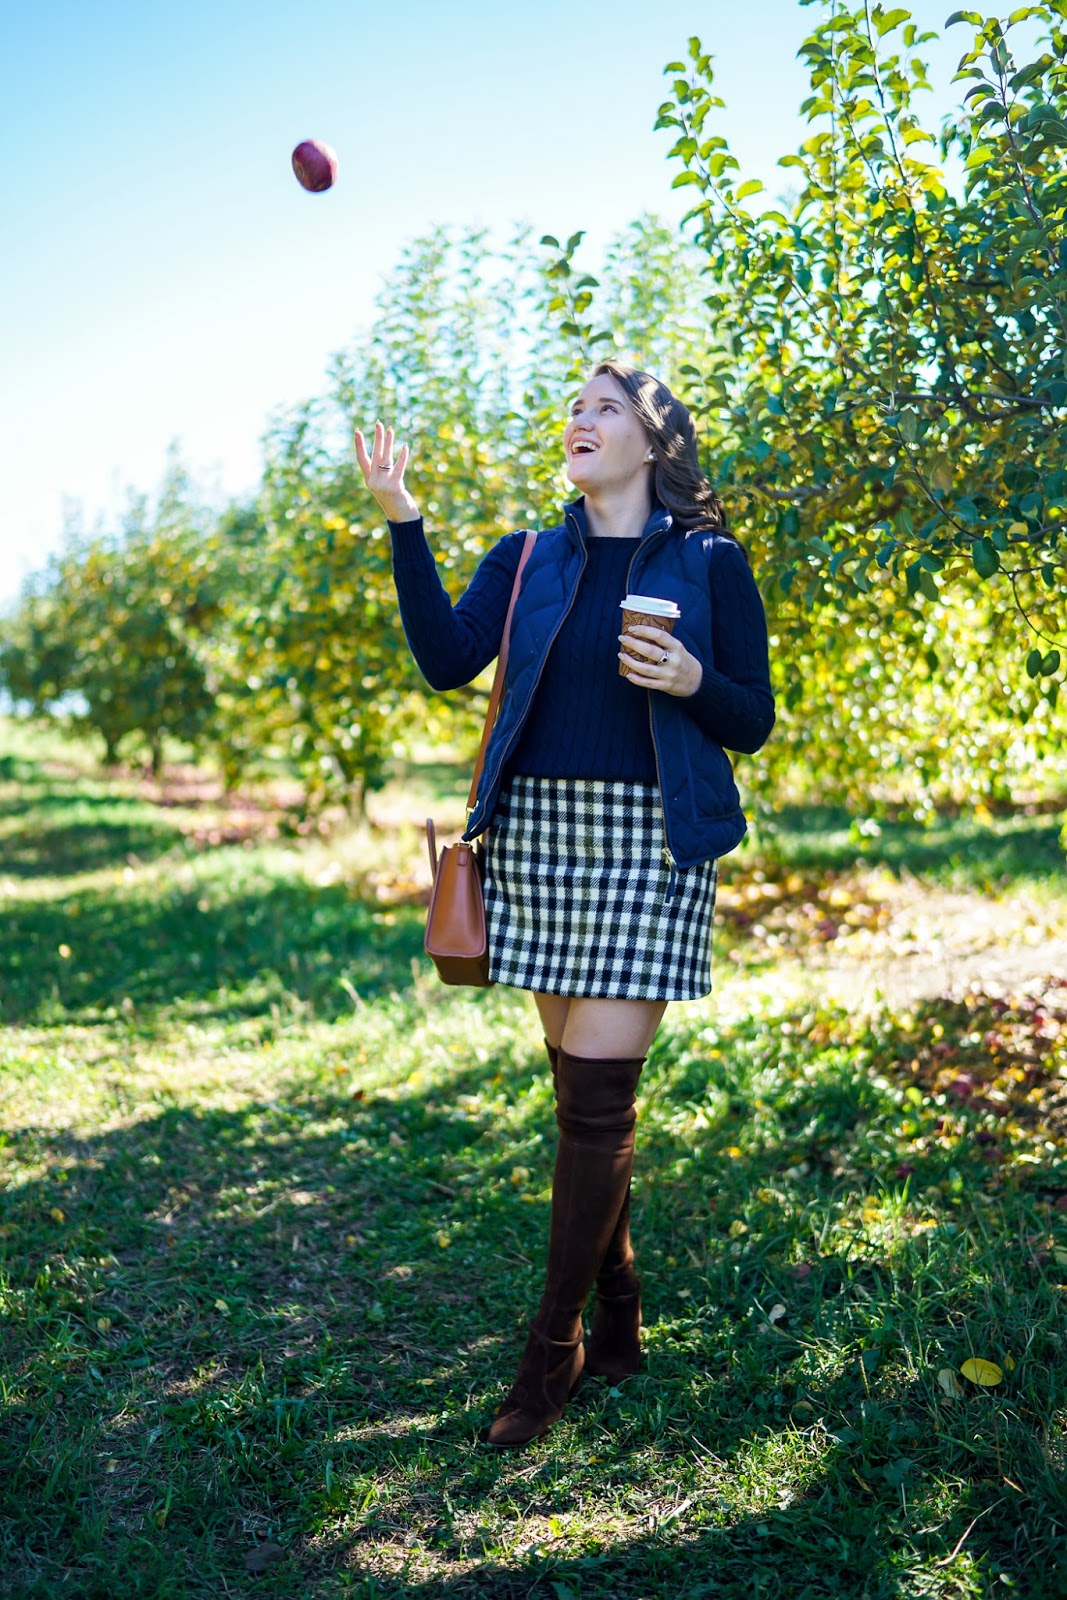 apple picking, apple orchard, new england fall activities